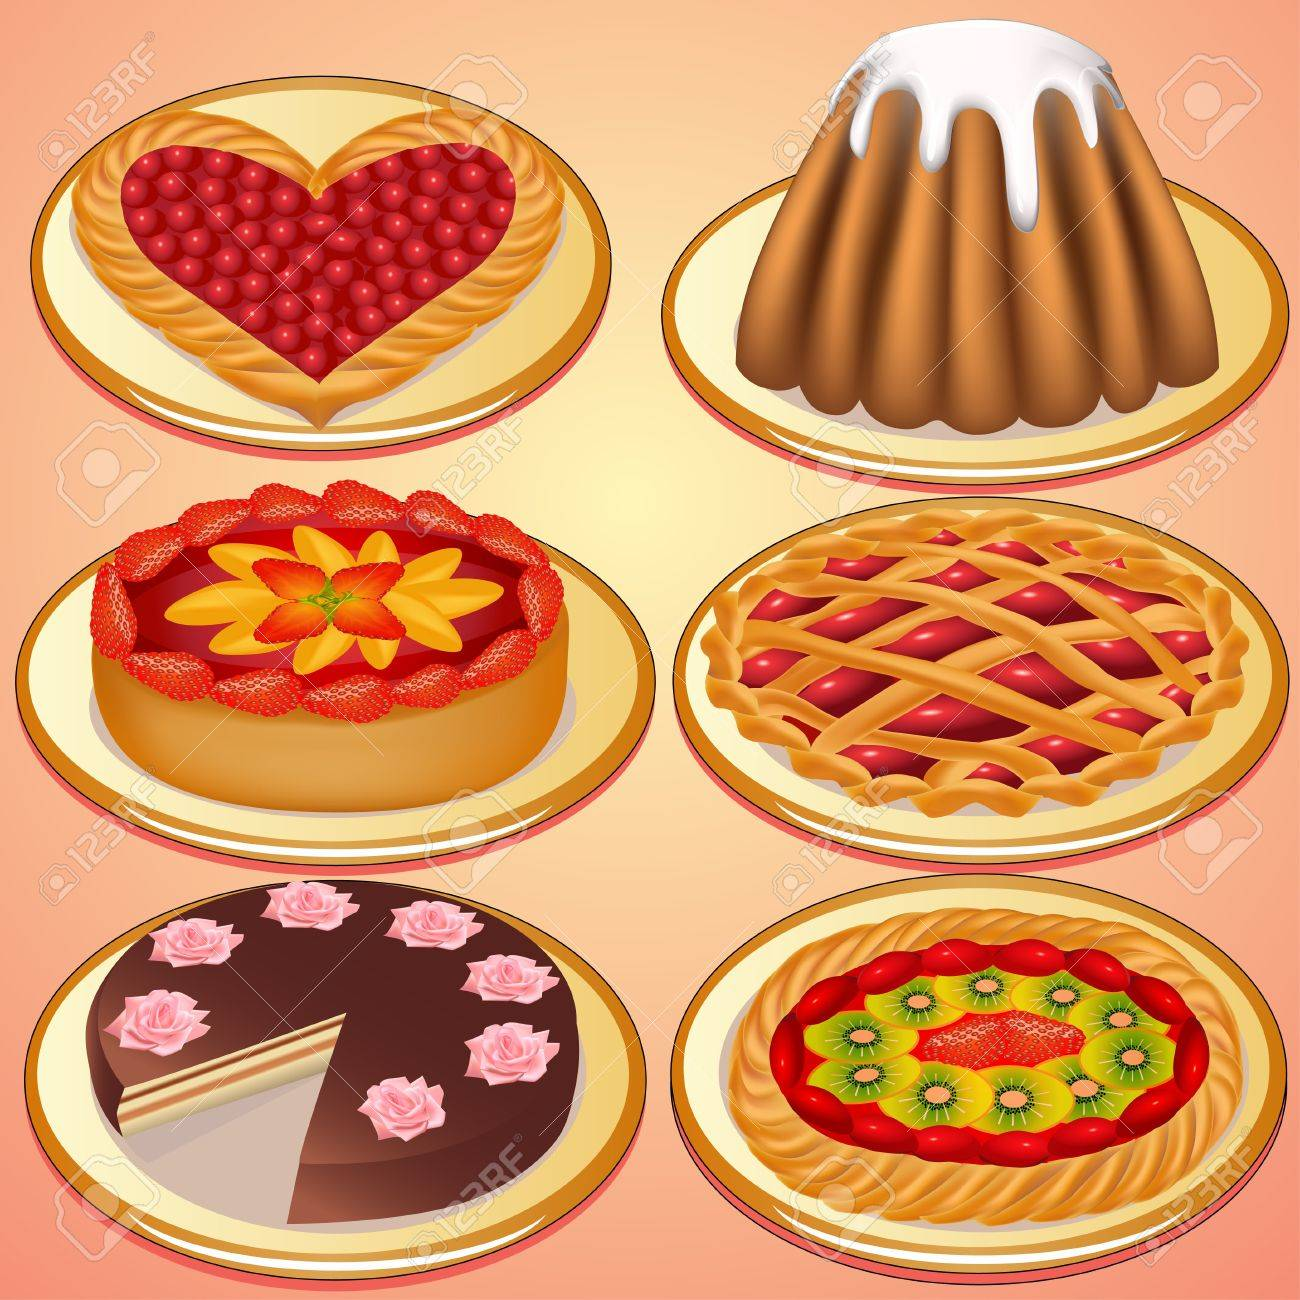 illustration set cake and pie with strawberries cherry Stock Vector - 15503522